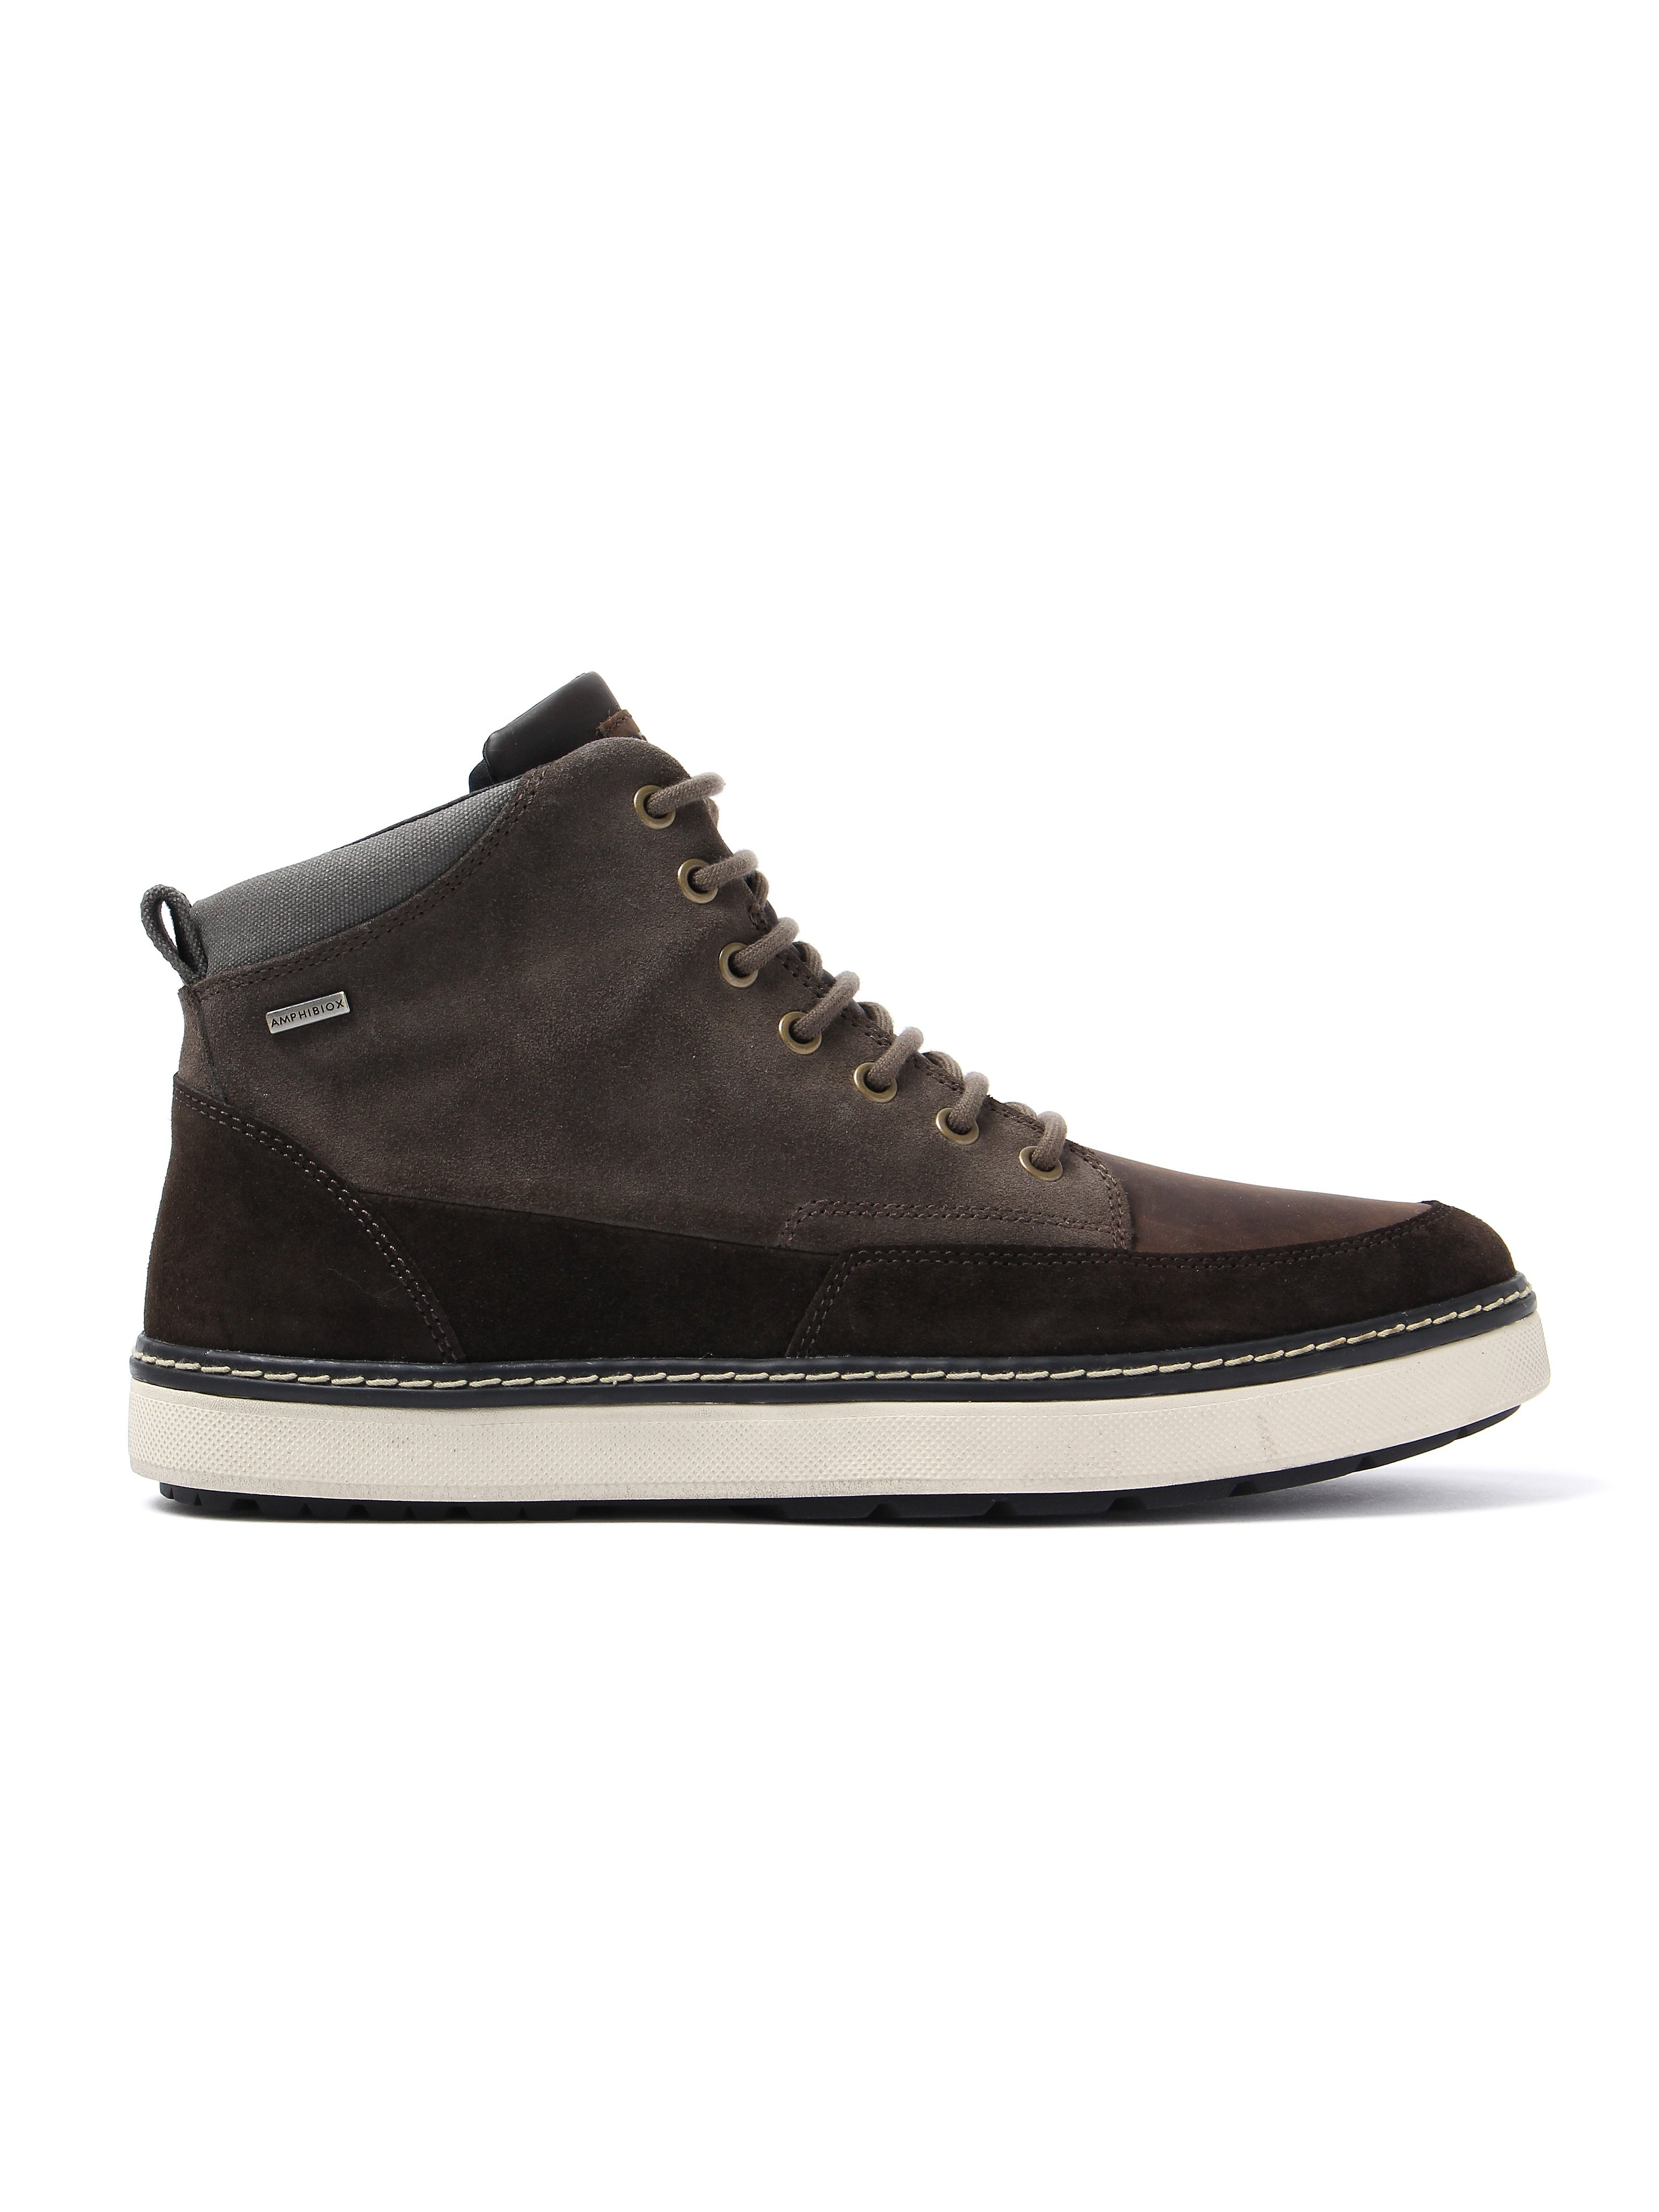 Geox Men's Mattias Abx Trainers - Chestnut Suede